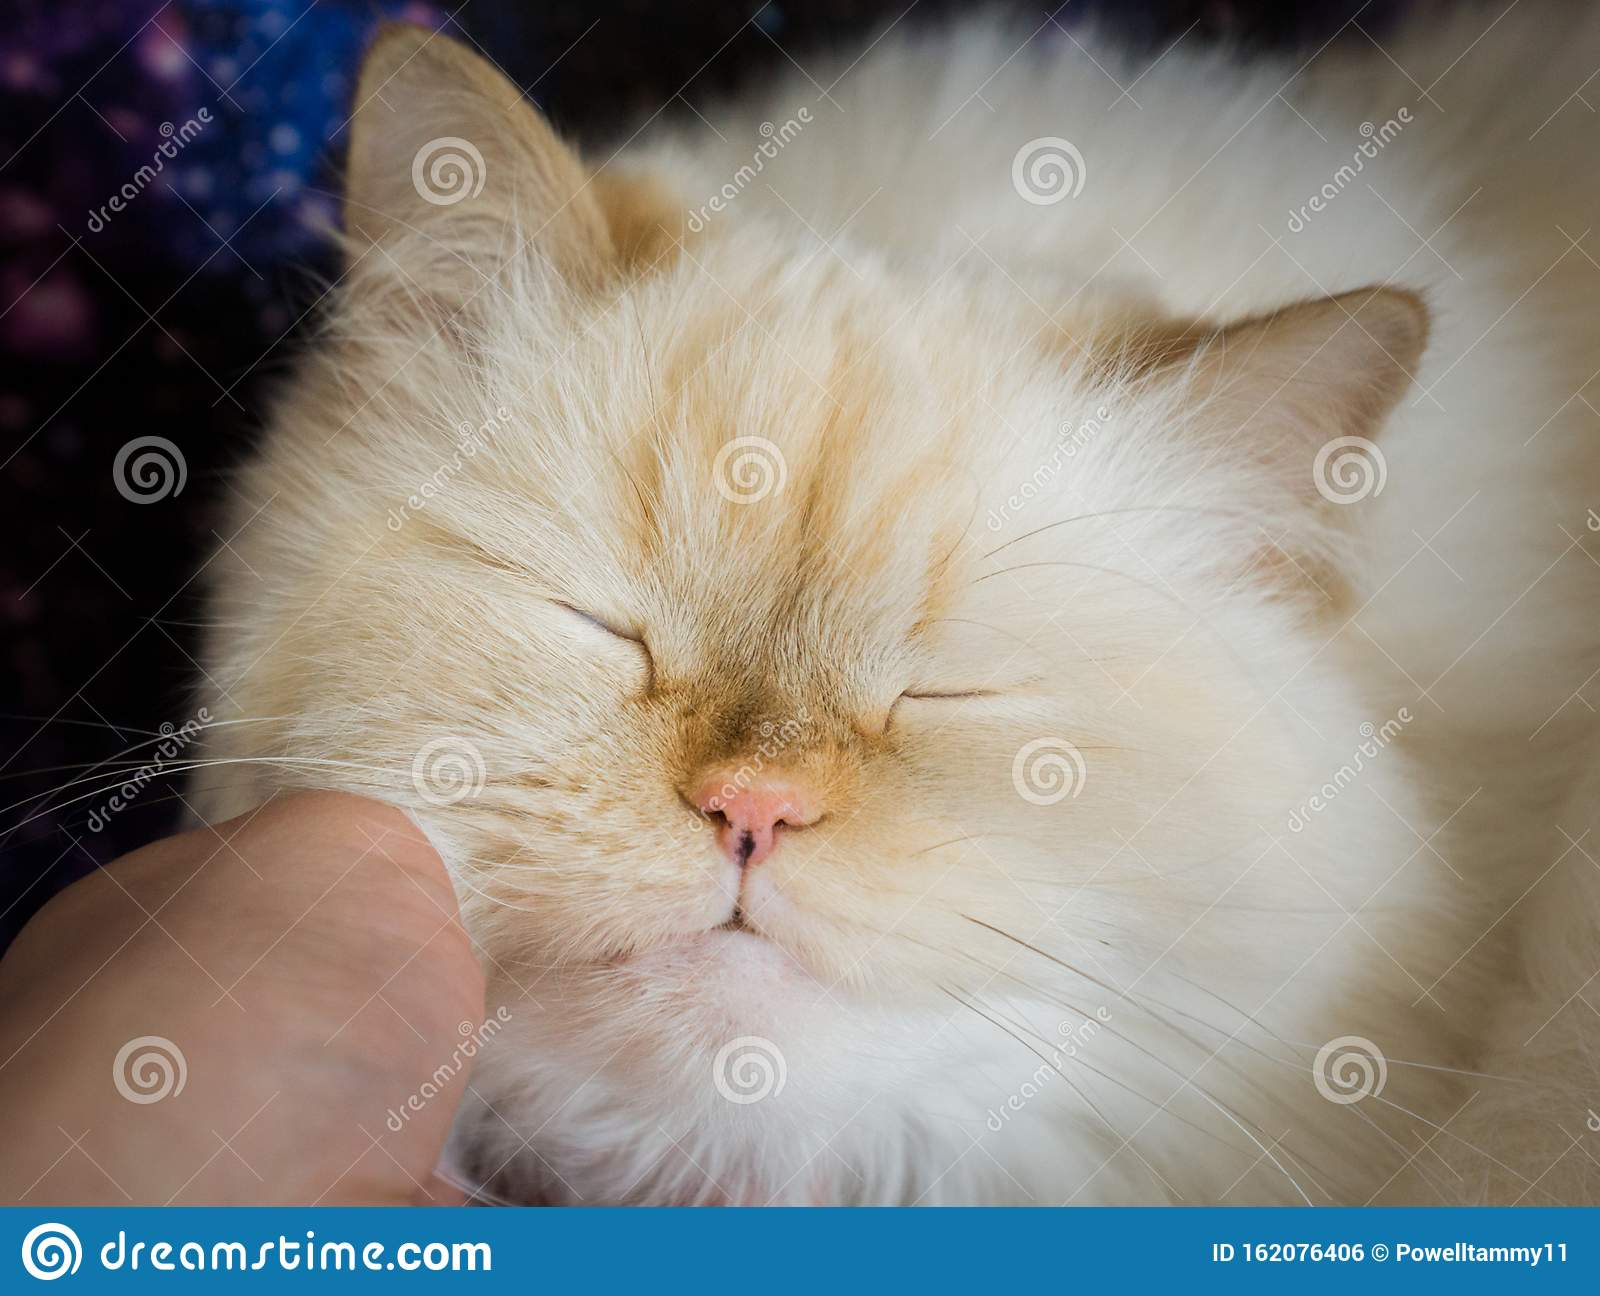 A Beautiful Himalayan Cat Cuddling With Her Owner Stock Photo Image Of Humananimal Human 162076406